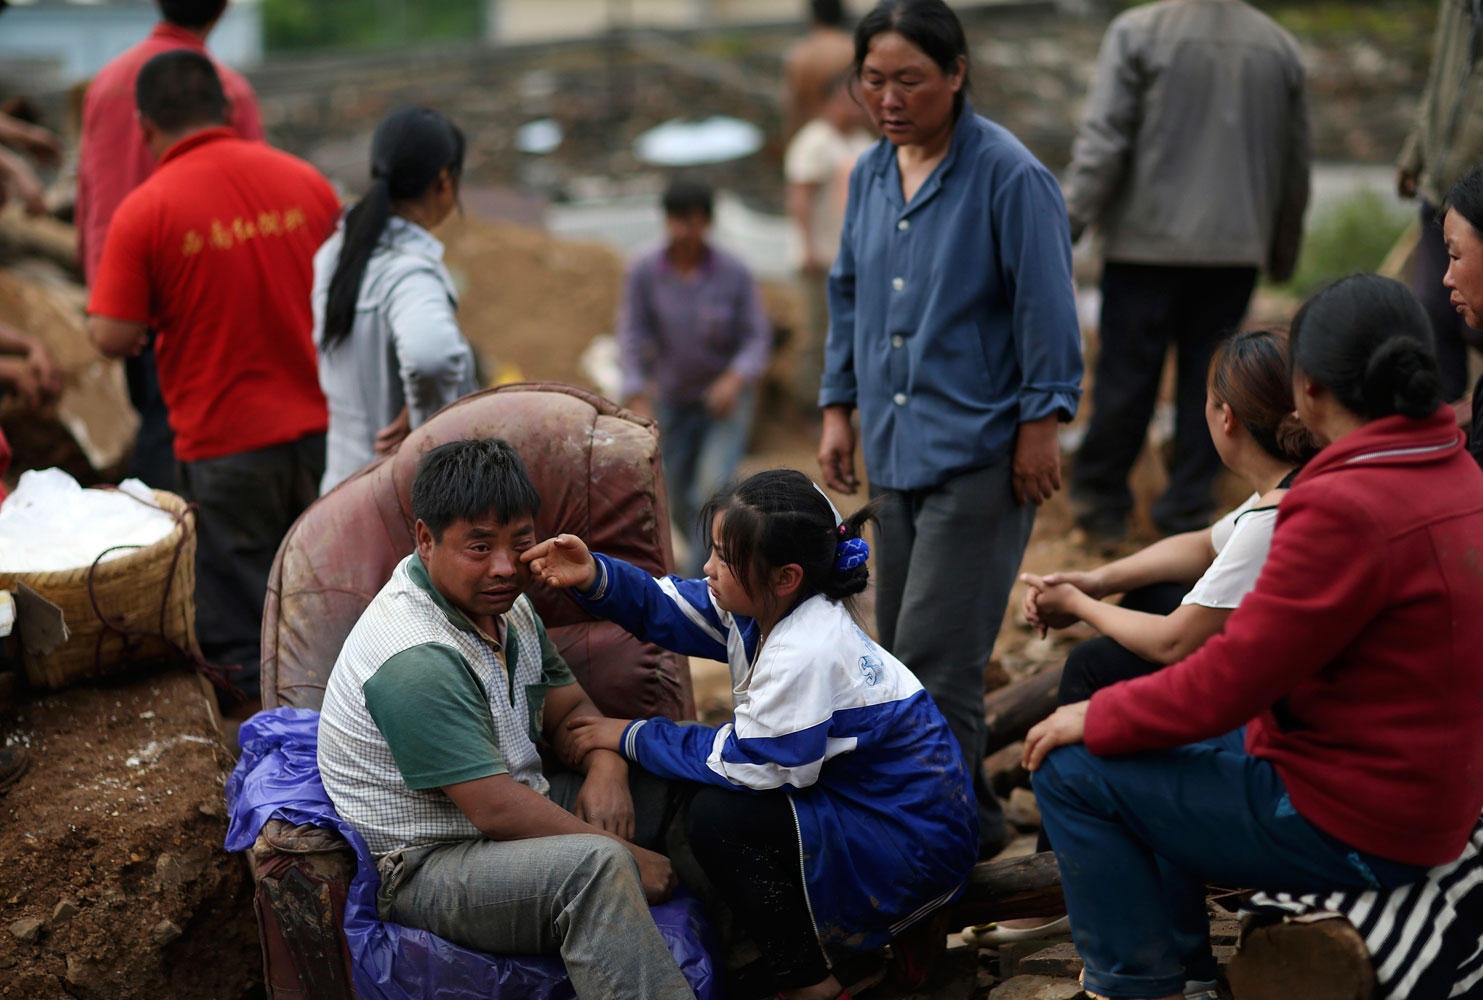 Liu Jiali (front L) cries as his daughter (C) wipes his tear after an earthquake killed Liu's wife and two other children in Longtoushan township of Ludian county, Yunnan province  on Aug. 4, 2014.